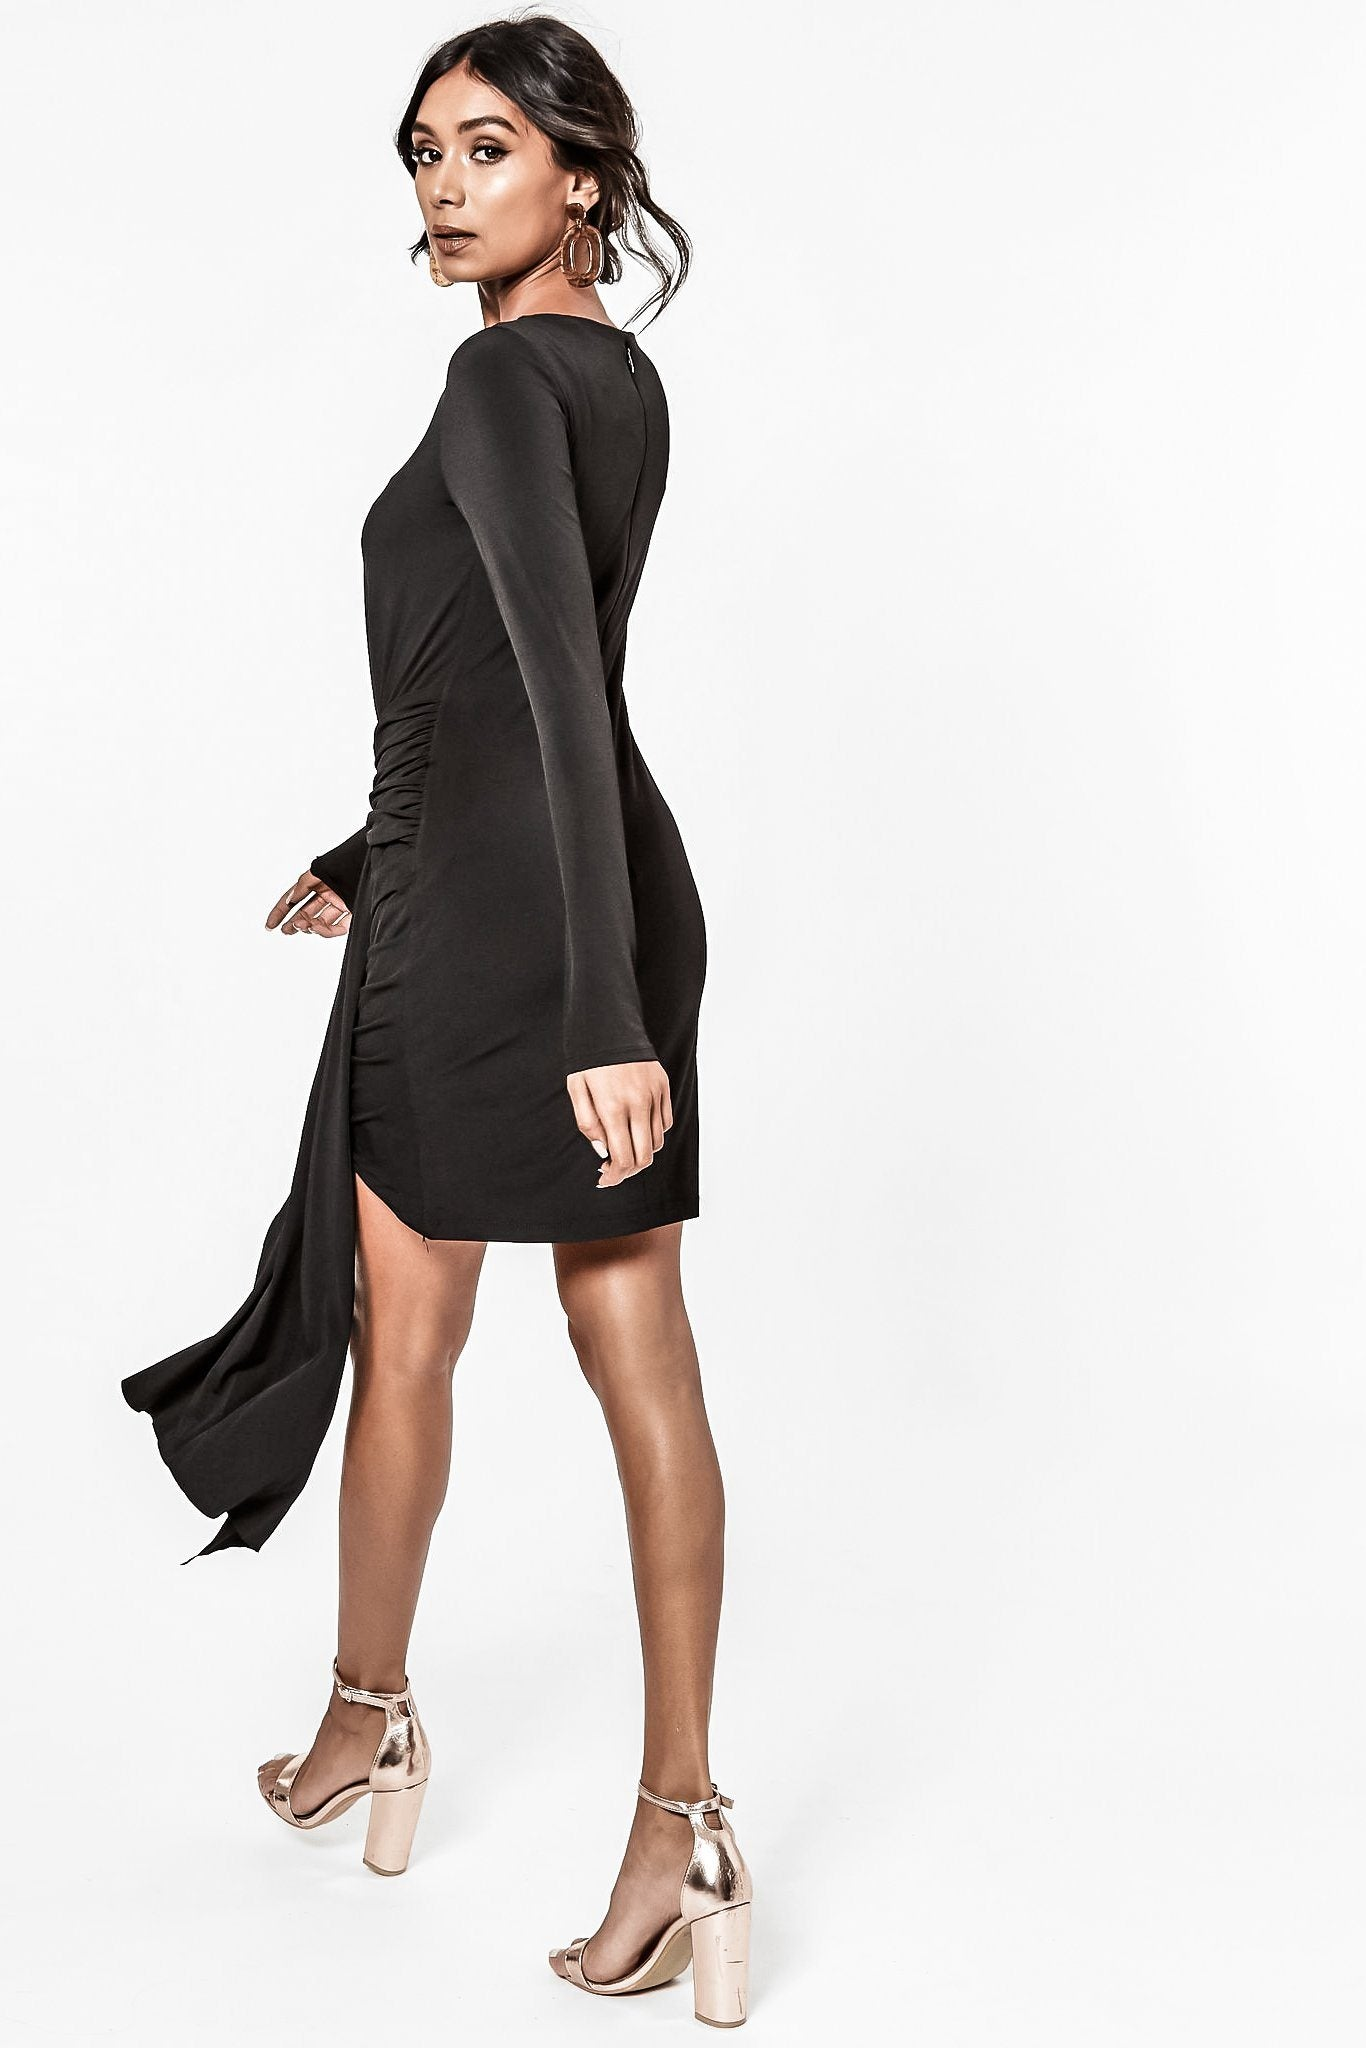 MORELLO STRETCH KNIT LONG SLEEVE BLACK MINI DRESS